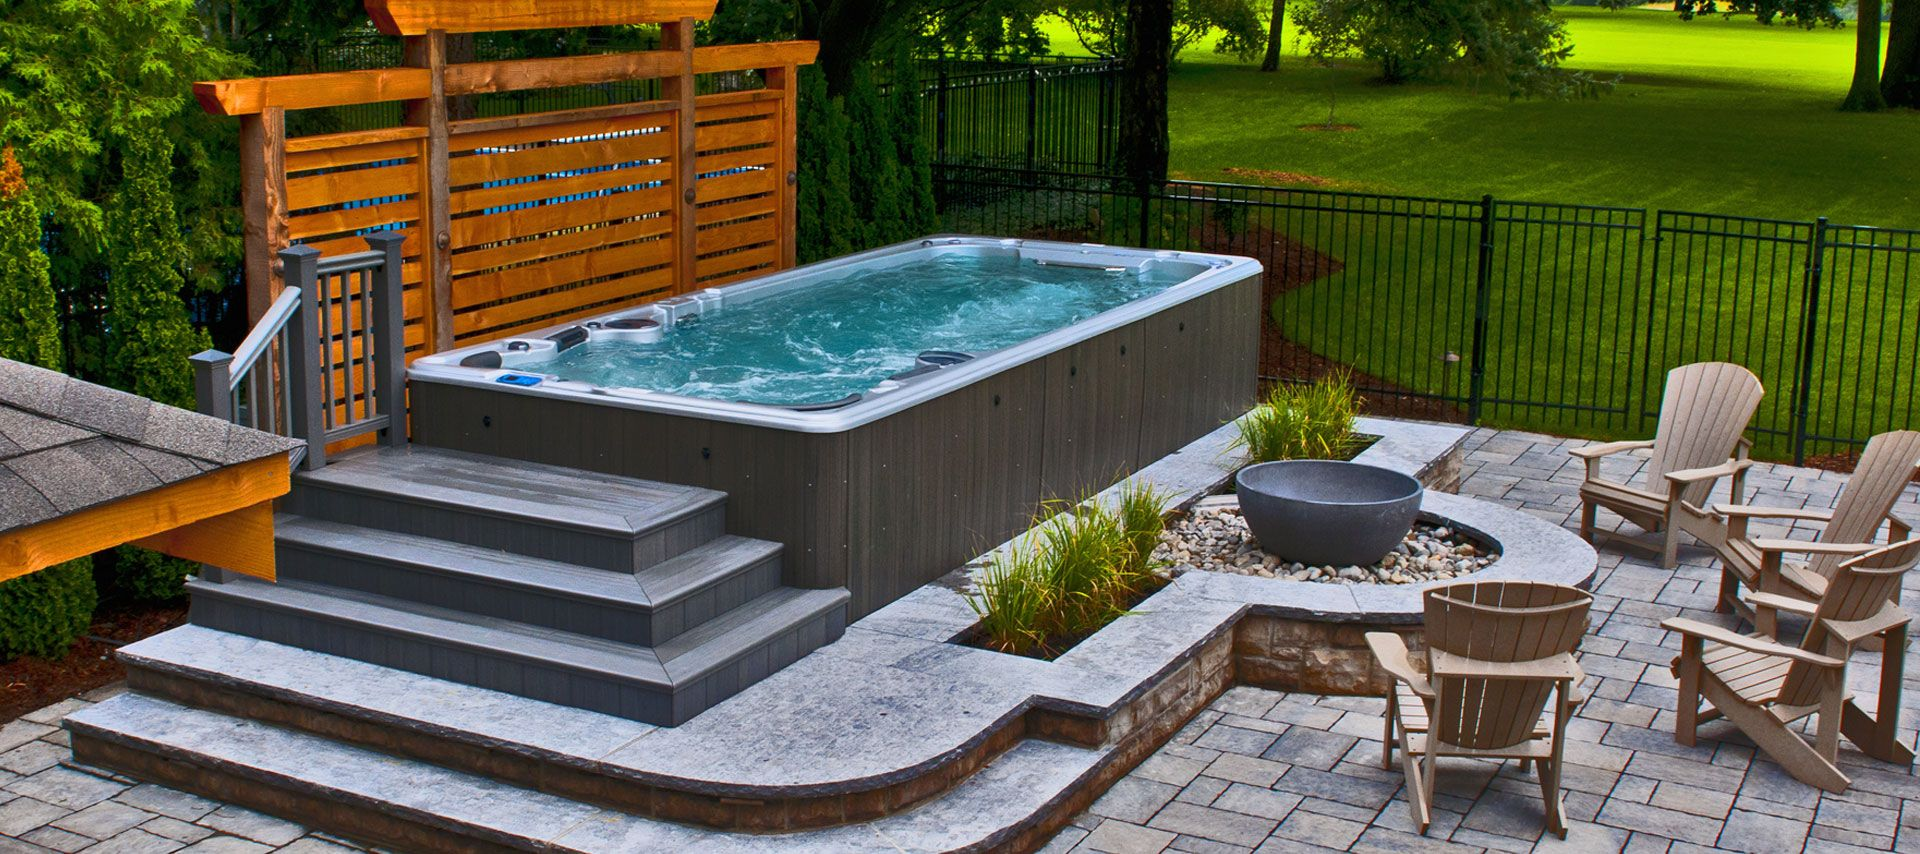 Swiming Pools Pool Spas With Garden Design Ideas Also Landscaping